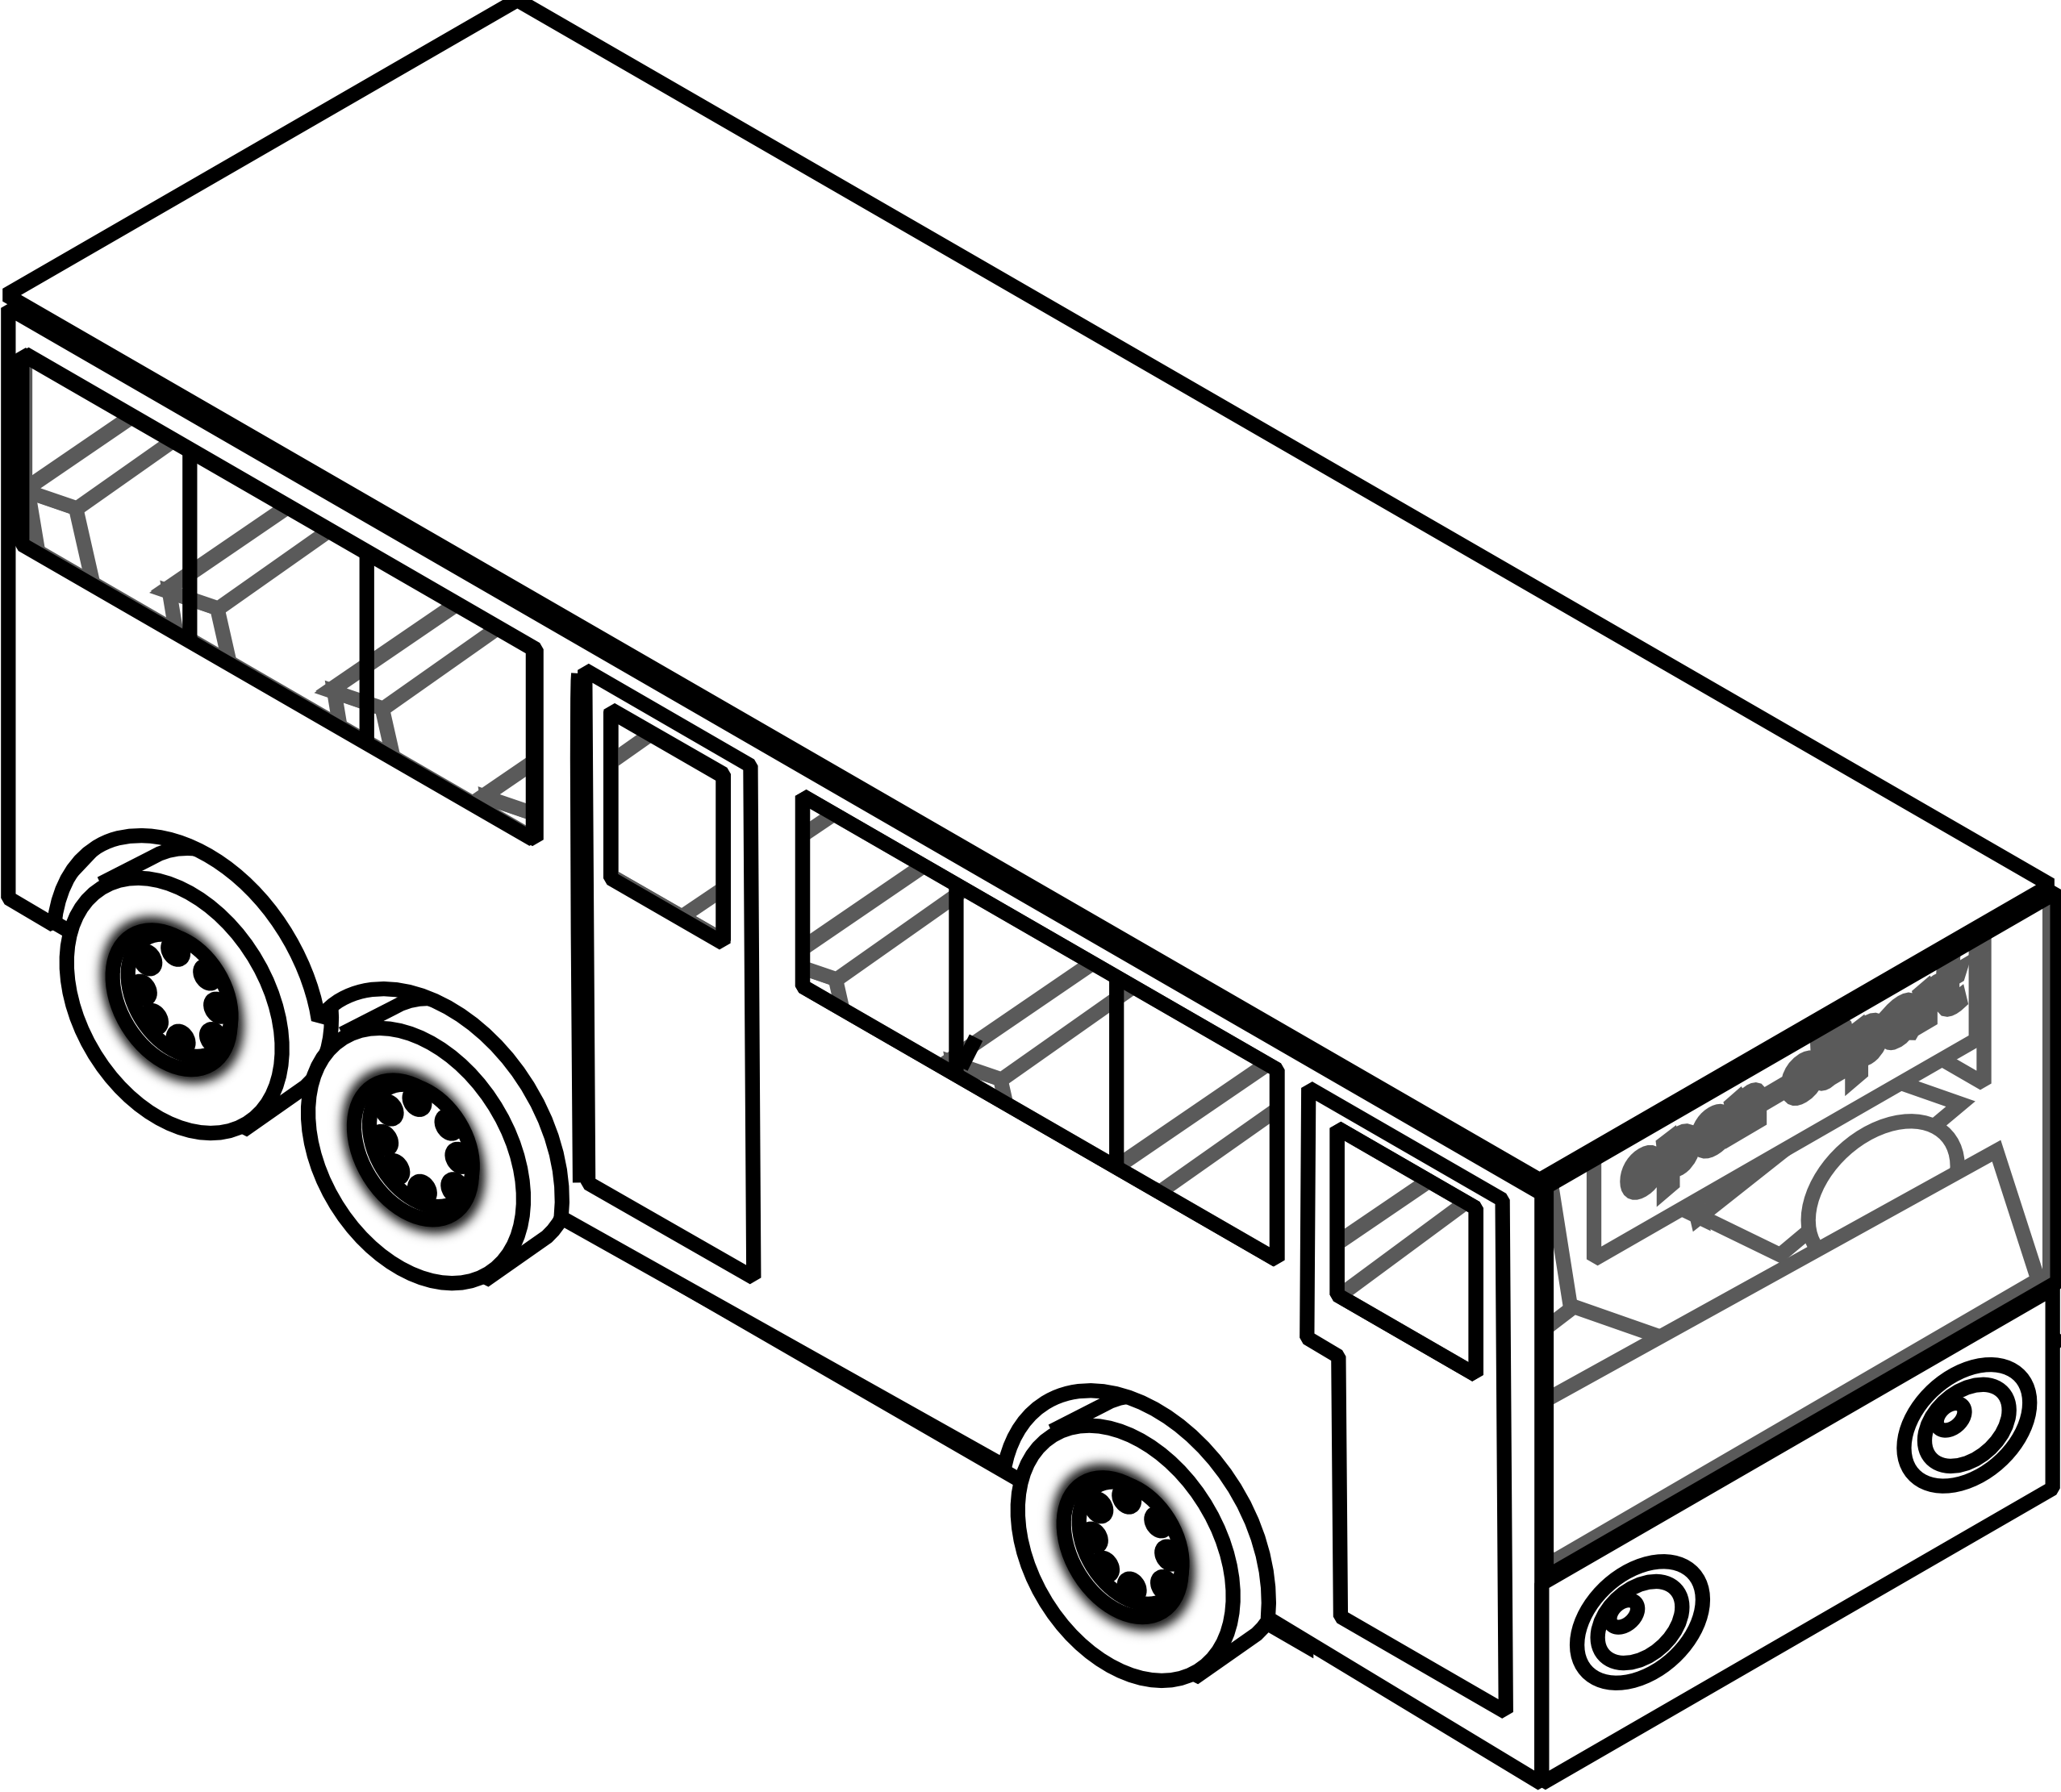 Black And White Clipart Of Bus.